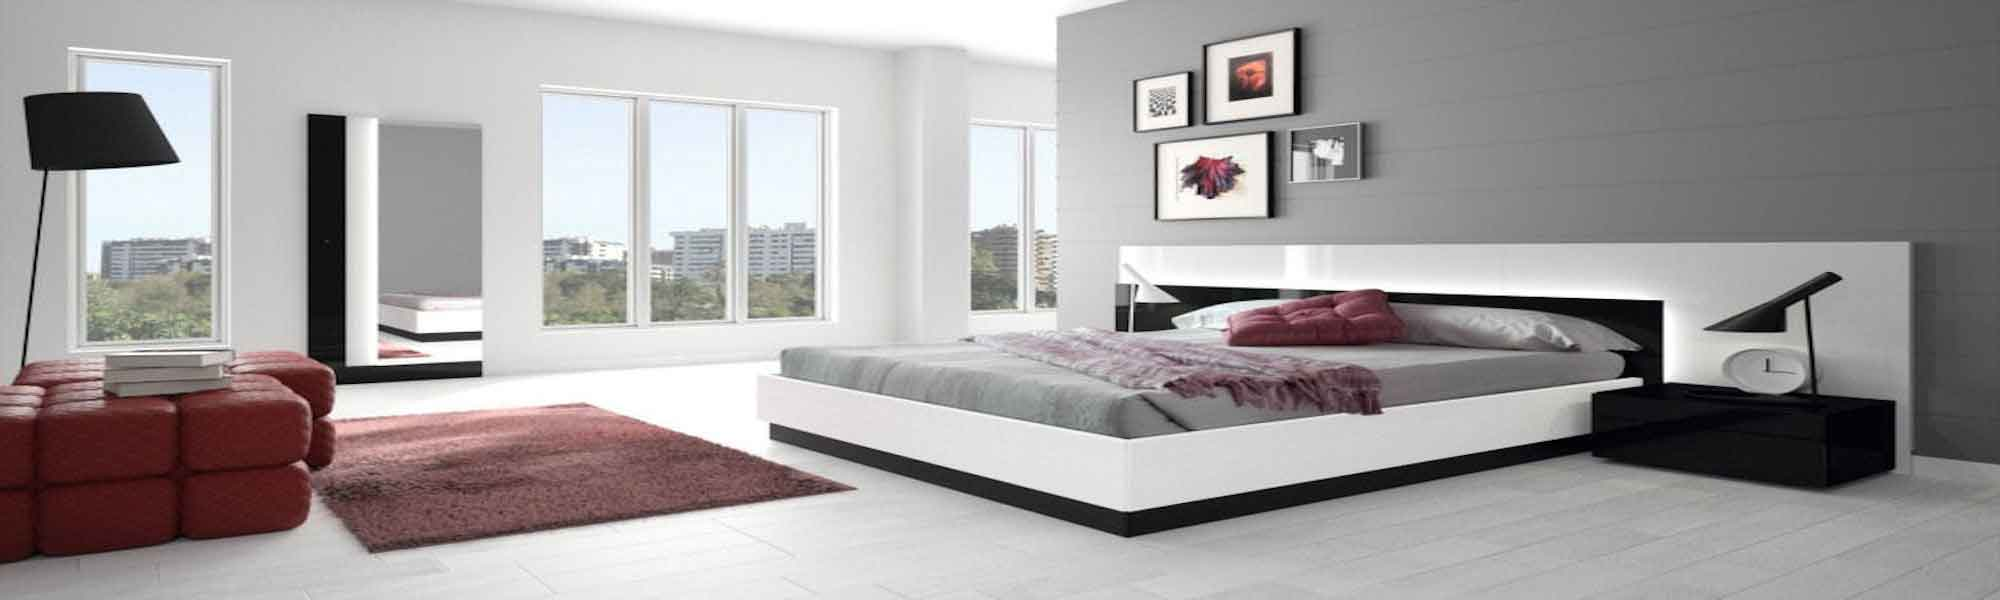 Hitech is a top fuarniture manufacturer in Lagos.. Supplier of Office & Home furniture. Buy WHOLESALE furniture in Nigeria. Delivery Nationwide!